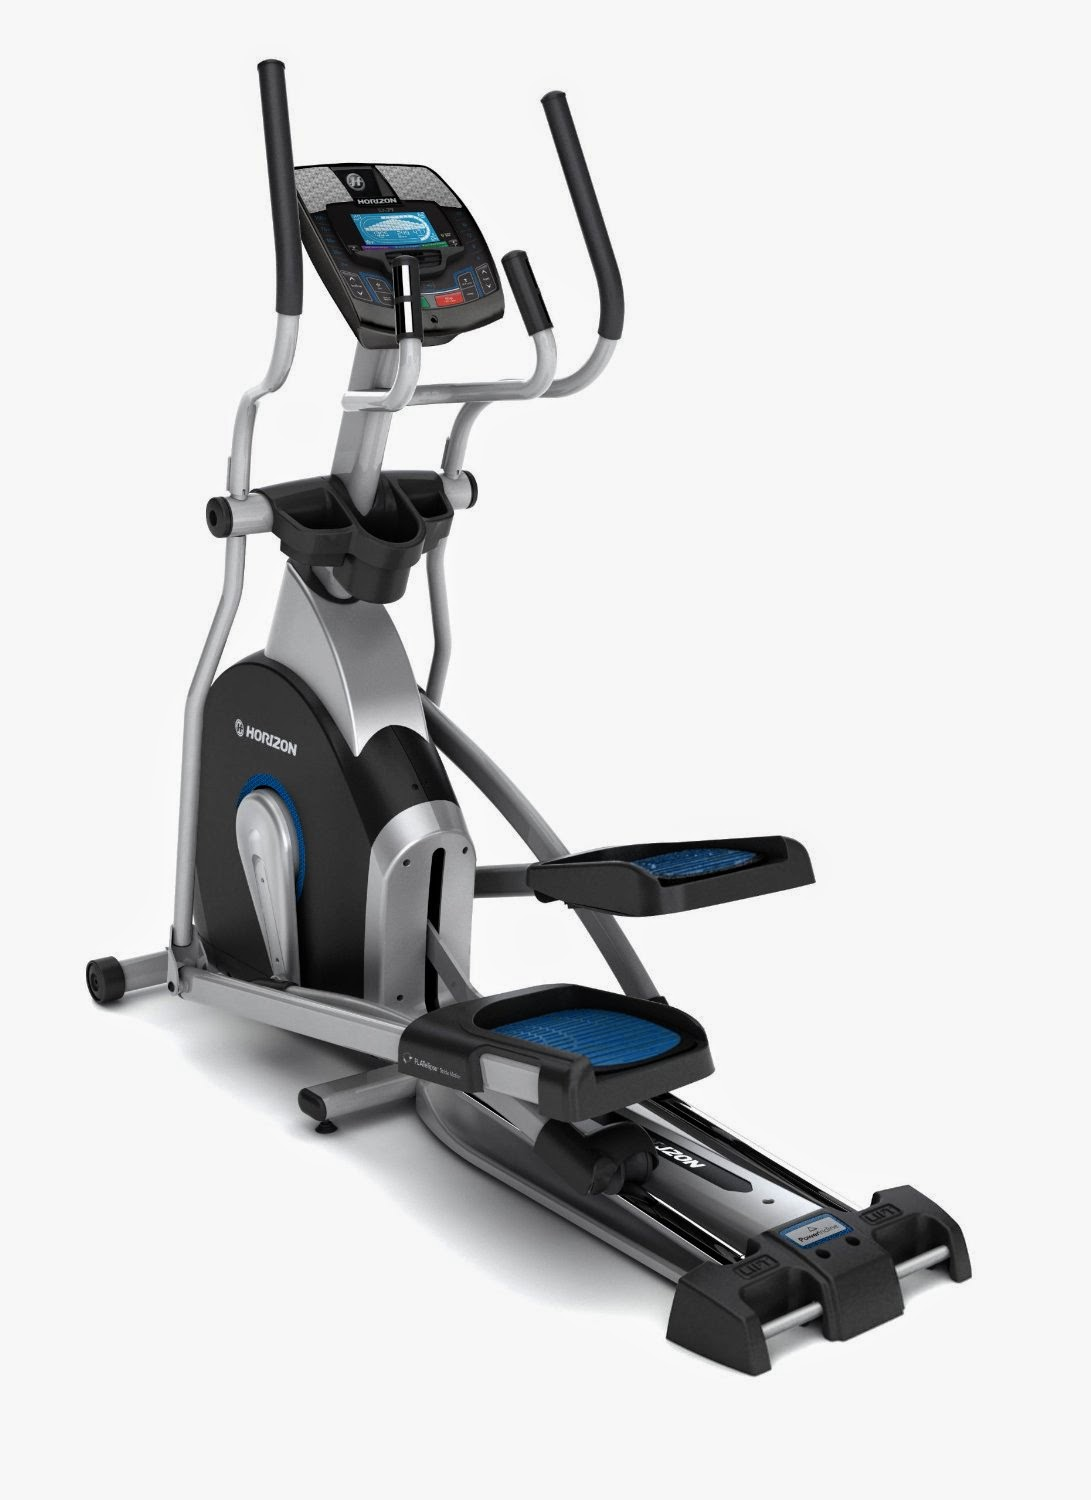 Horizon Fitness EX 79 2 Elliptical Trainer, picture, review features & specifications, plus compare with EX 69 2